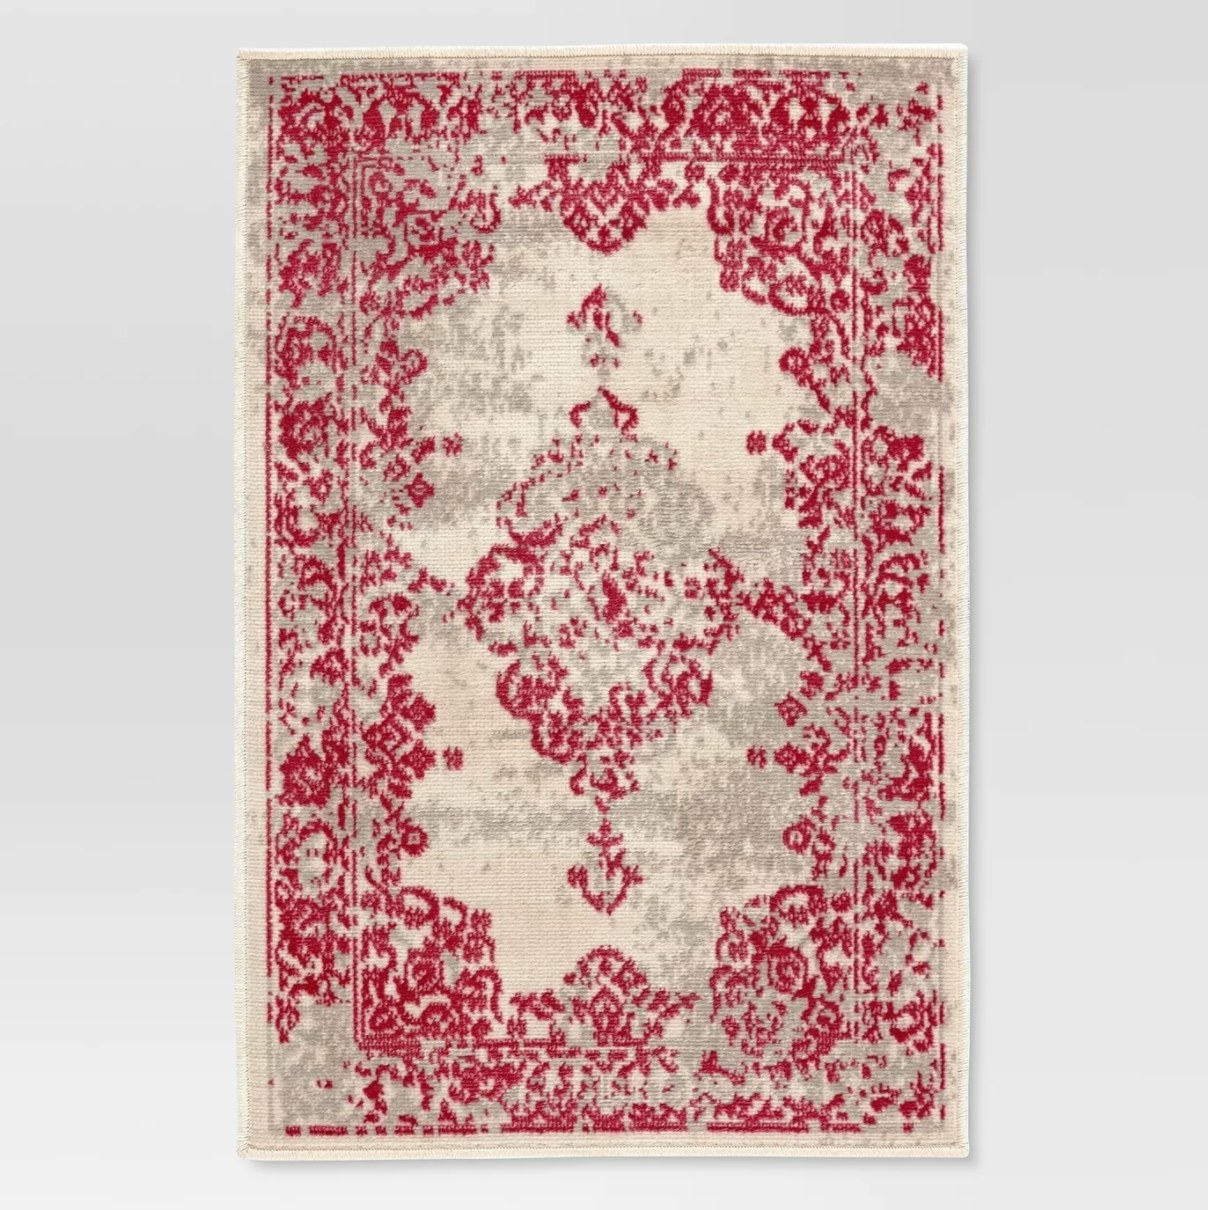 the red and cream ornate rug